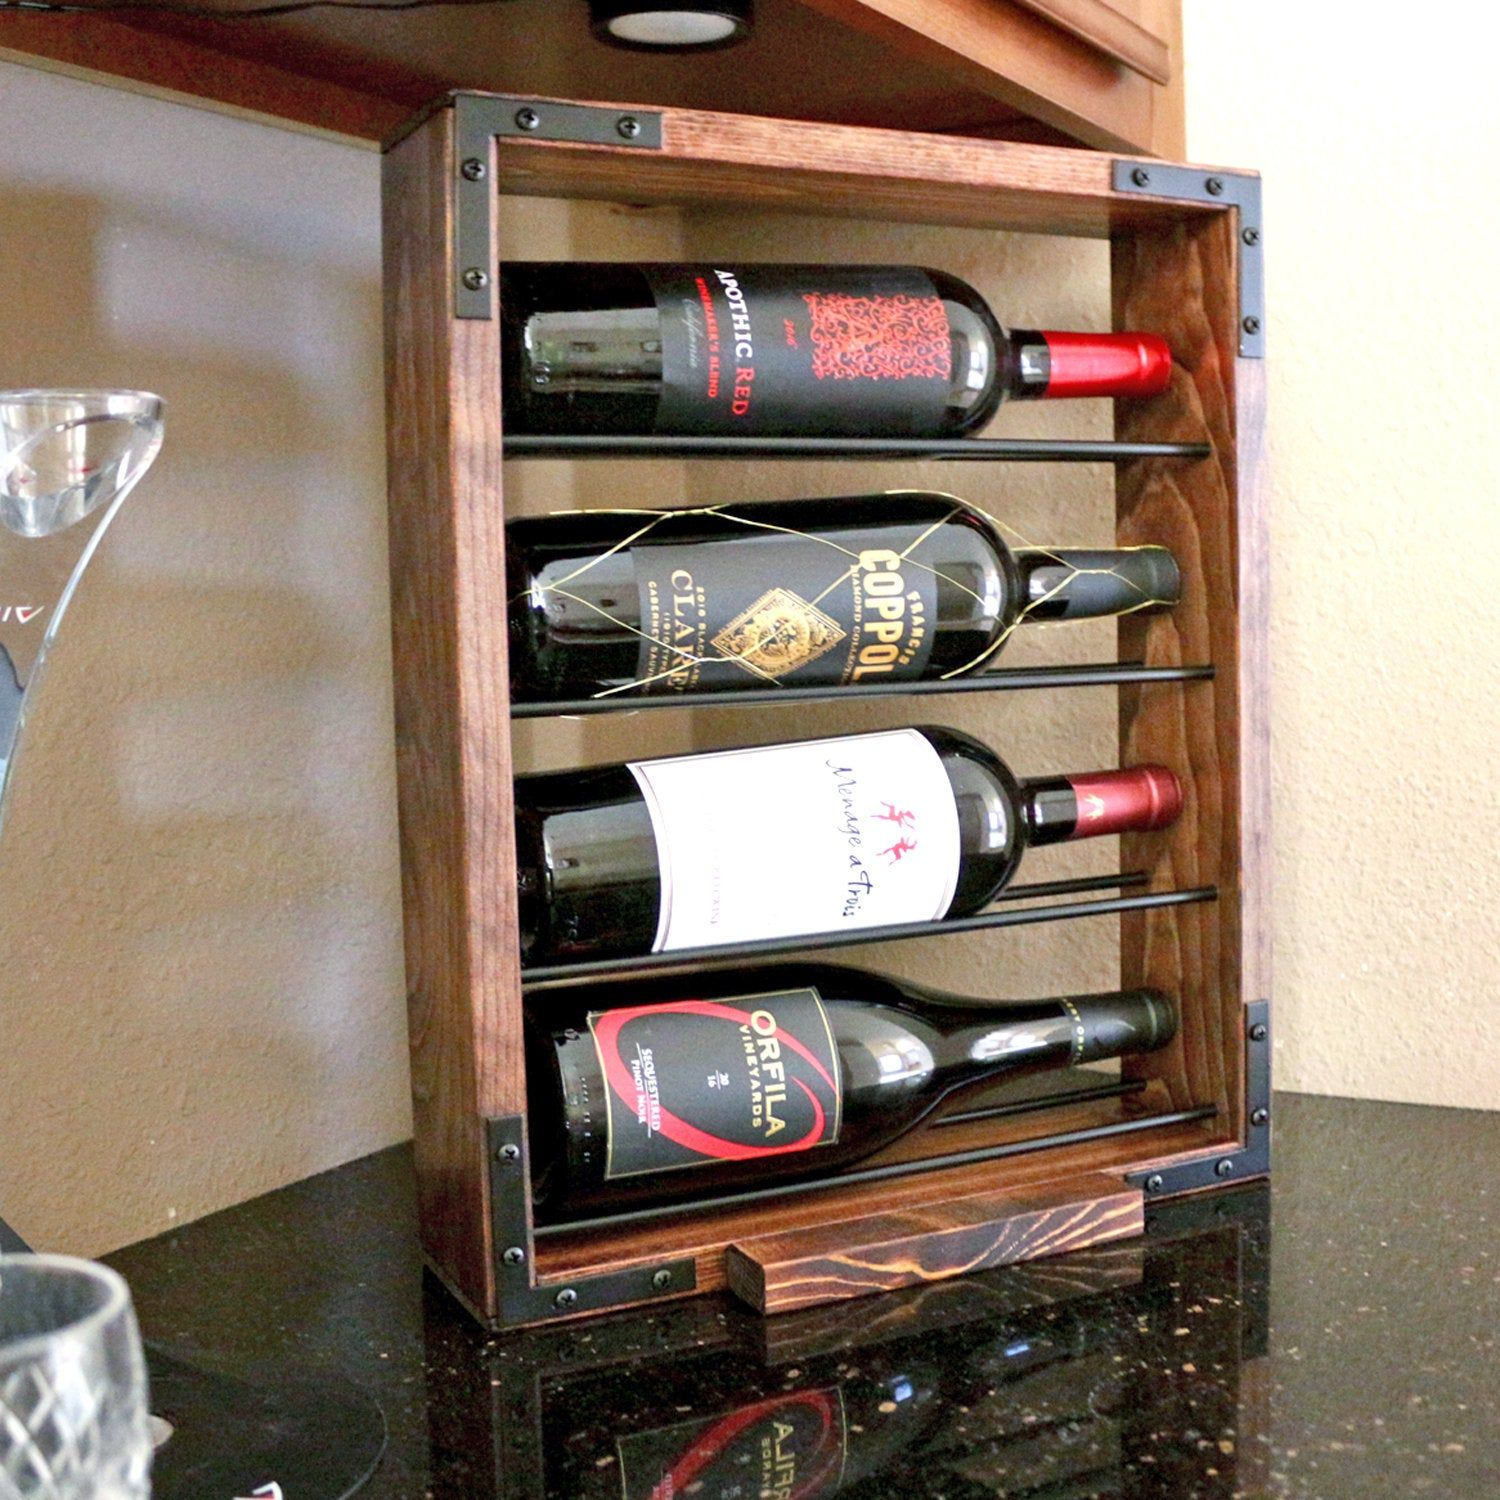 Countertop Horizontal Wine Rack Tabletop Wine Bottle Holder Etsy Wine Rack Table Top Wine Rack Wall Mounted Wine Rack